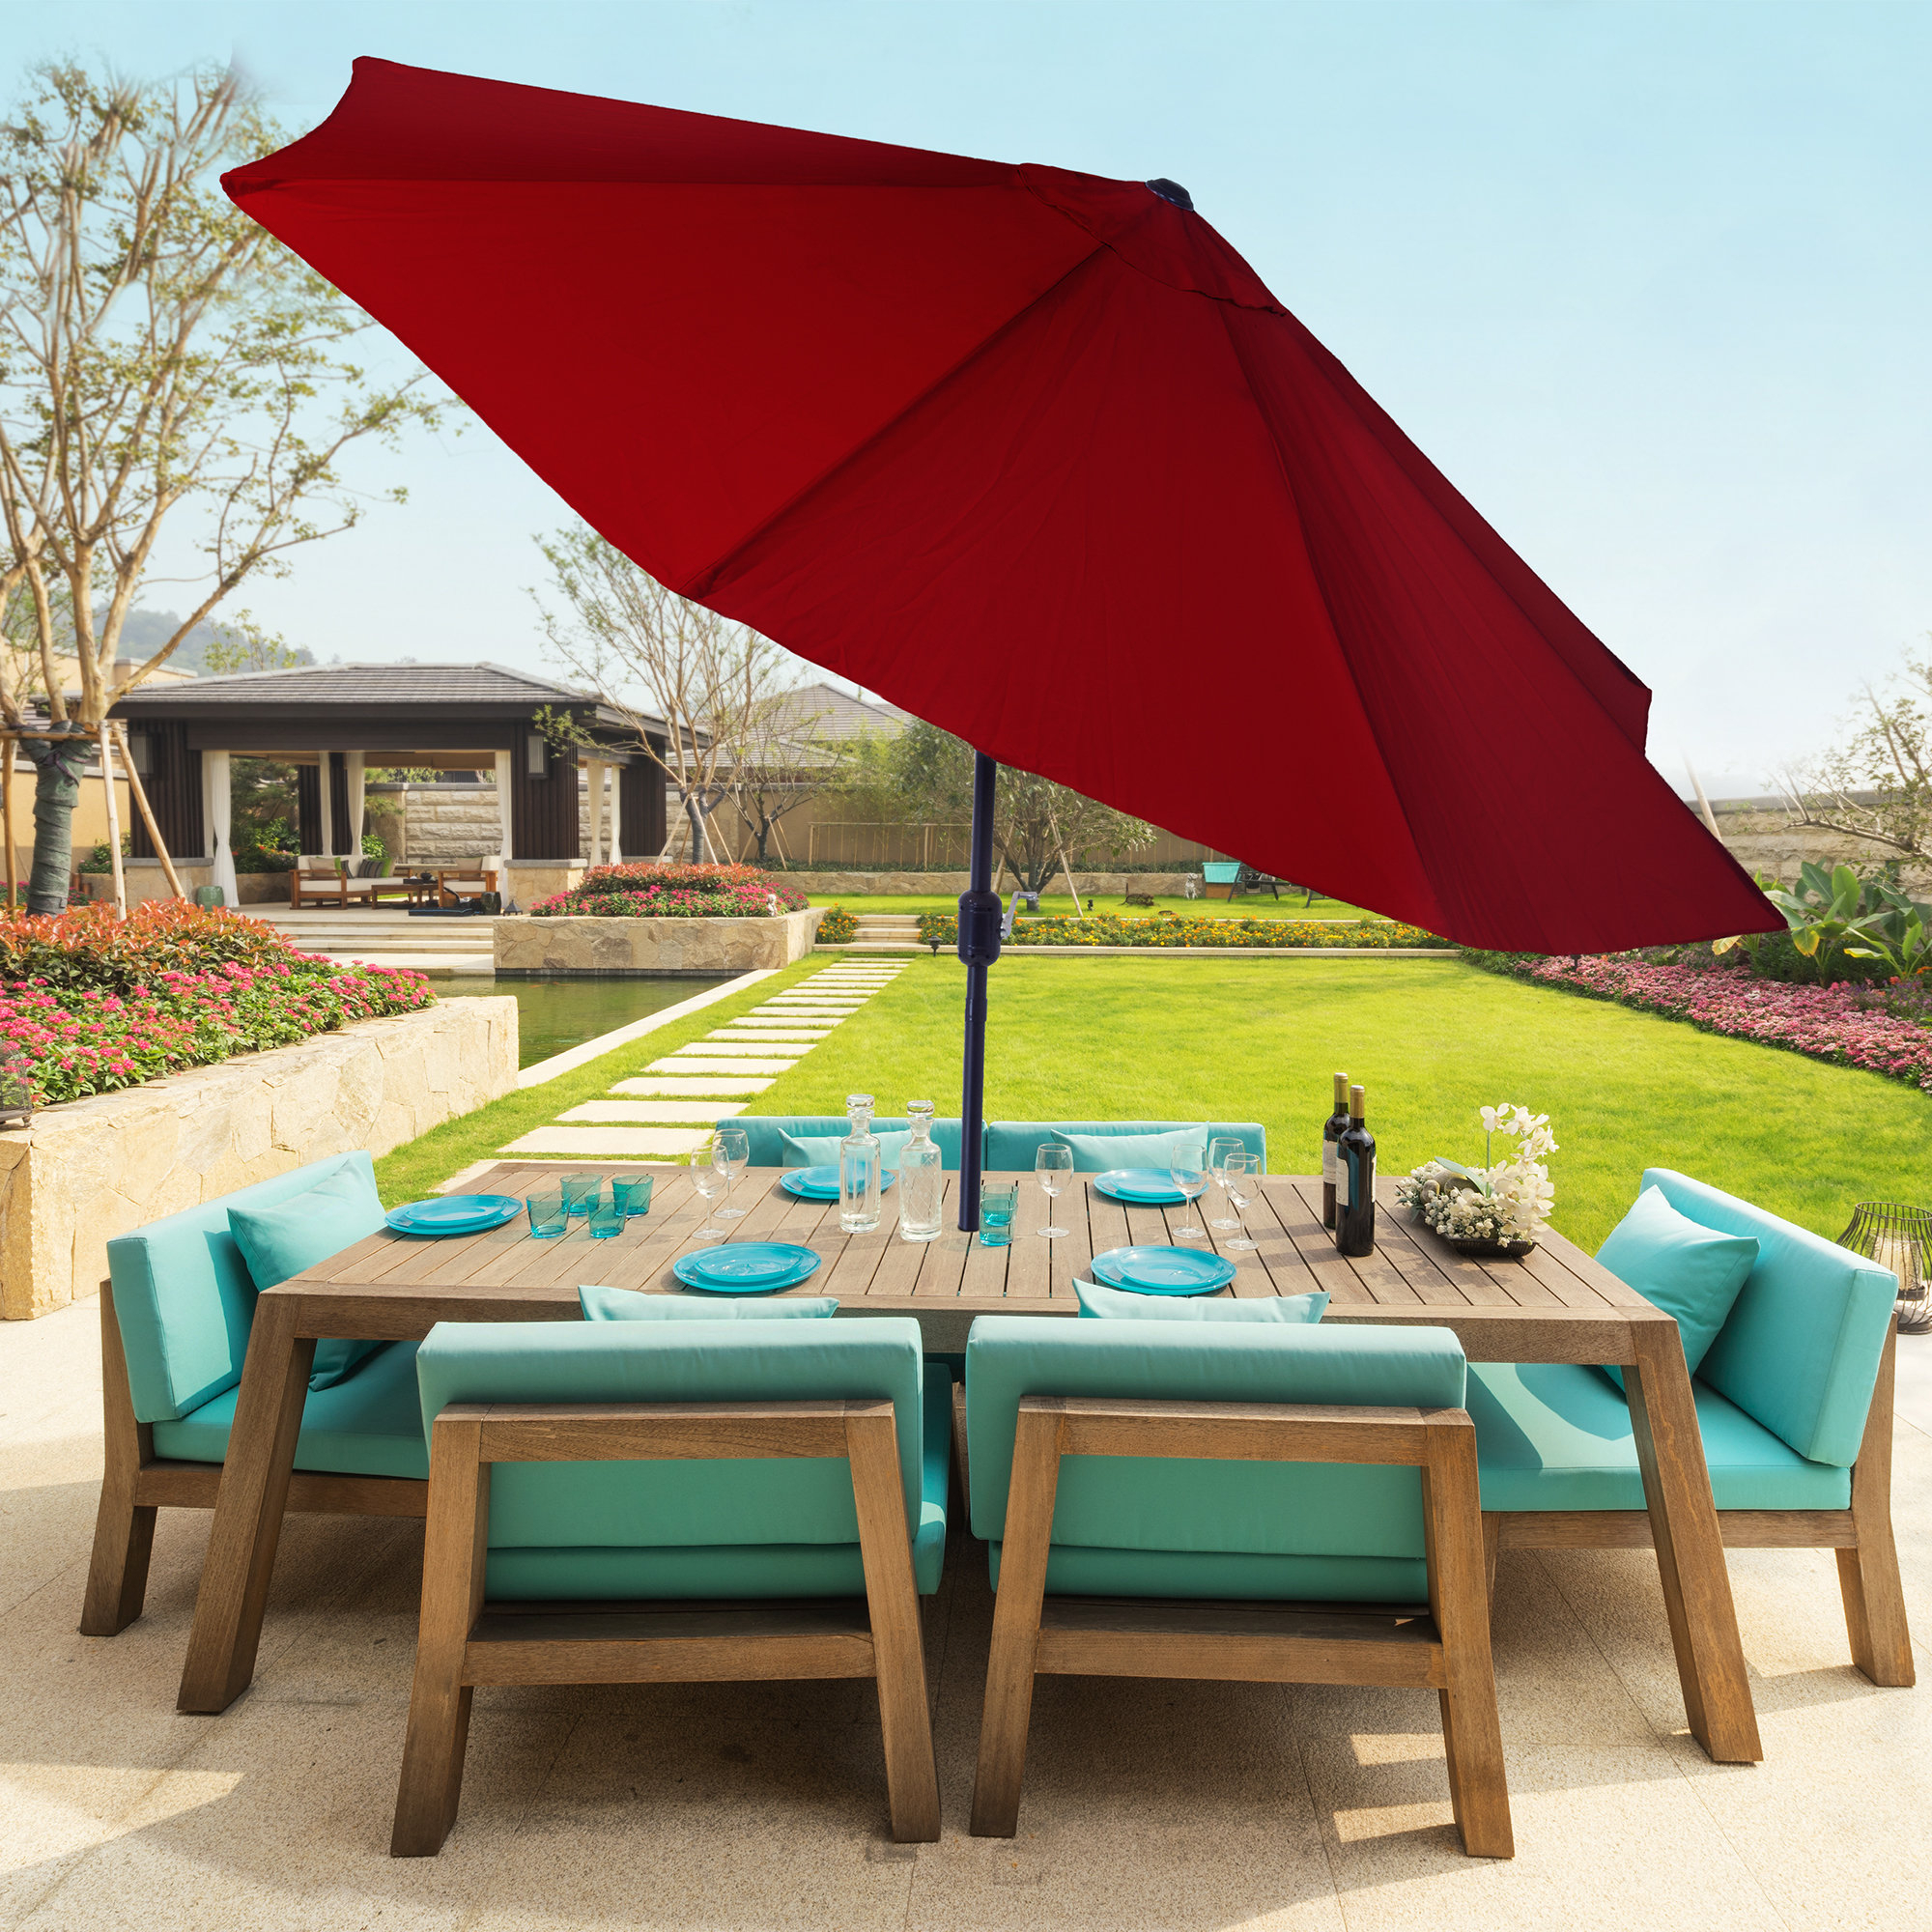 2020 Mullaney Beachcrest Home Market Umbrellas Pertaining To Beachcrest Home Kelton 10' Market Umbrella (Gallery 19 of 20)